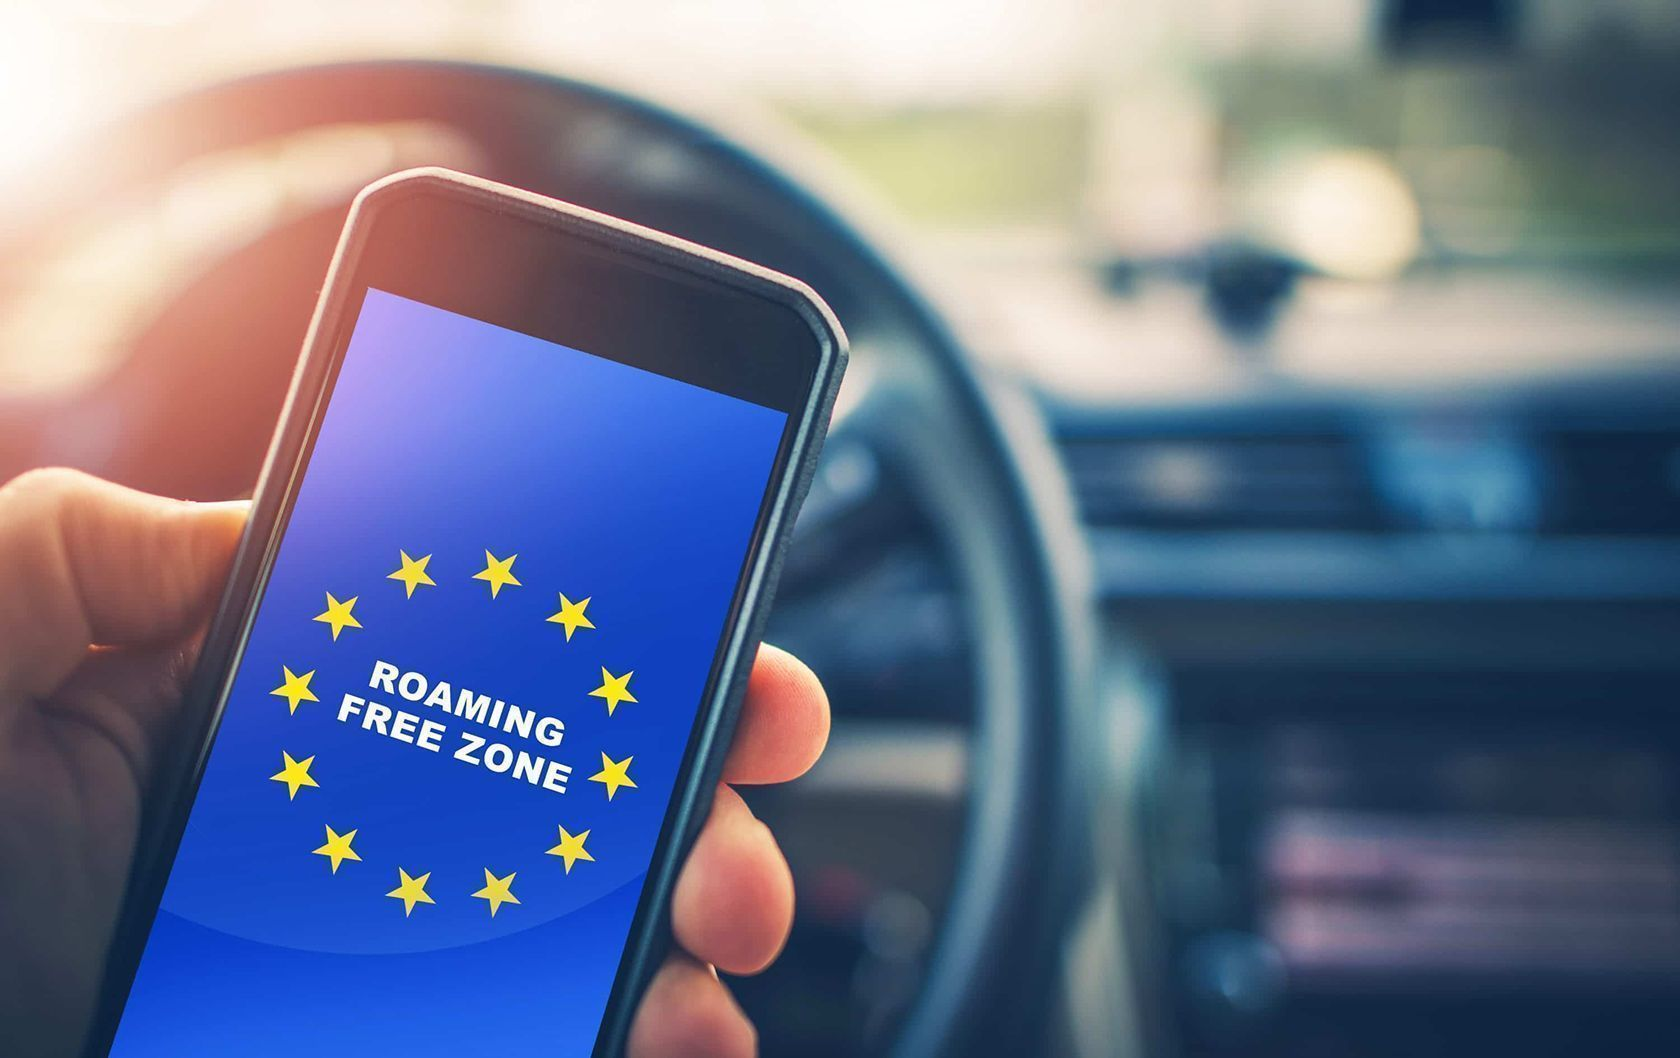 Are all phone companies offering this? Yes. It's an EU regulation, so they have no choice when it comes to ditching EU mobile roaming charges.